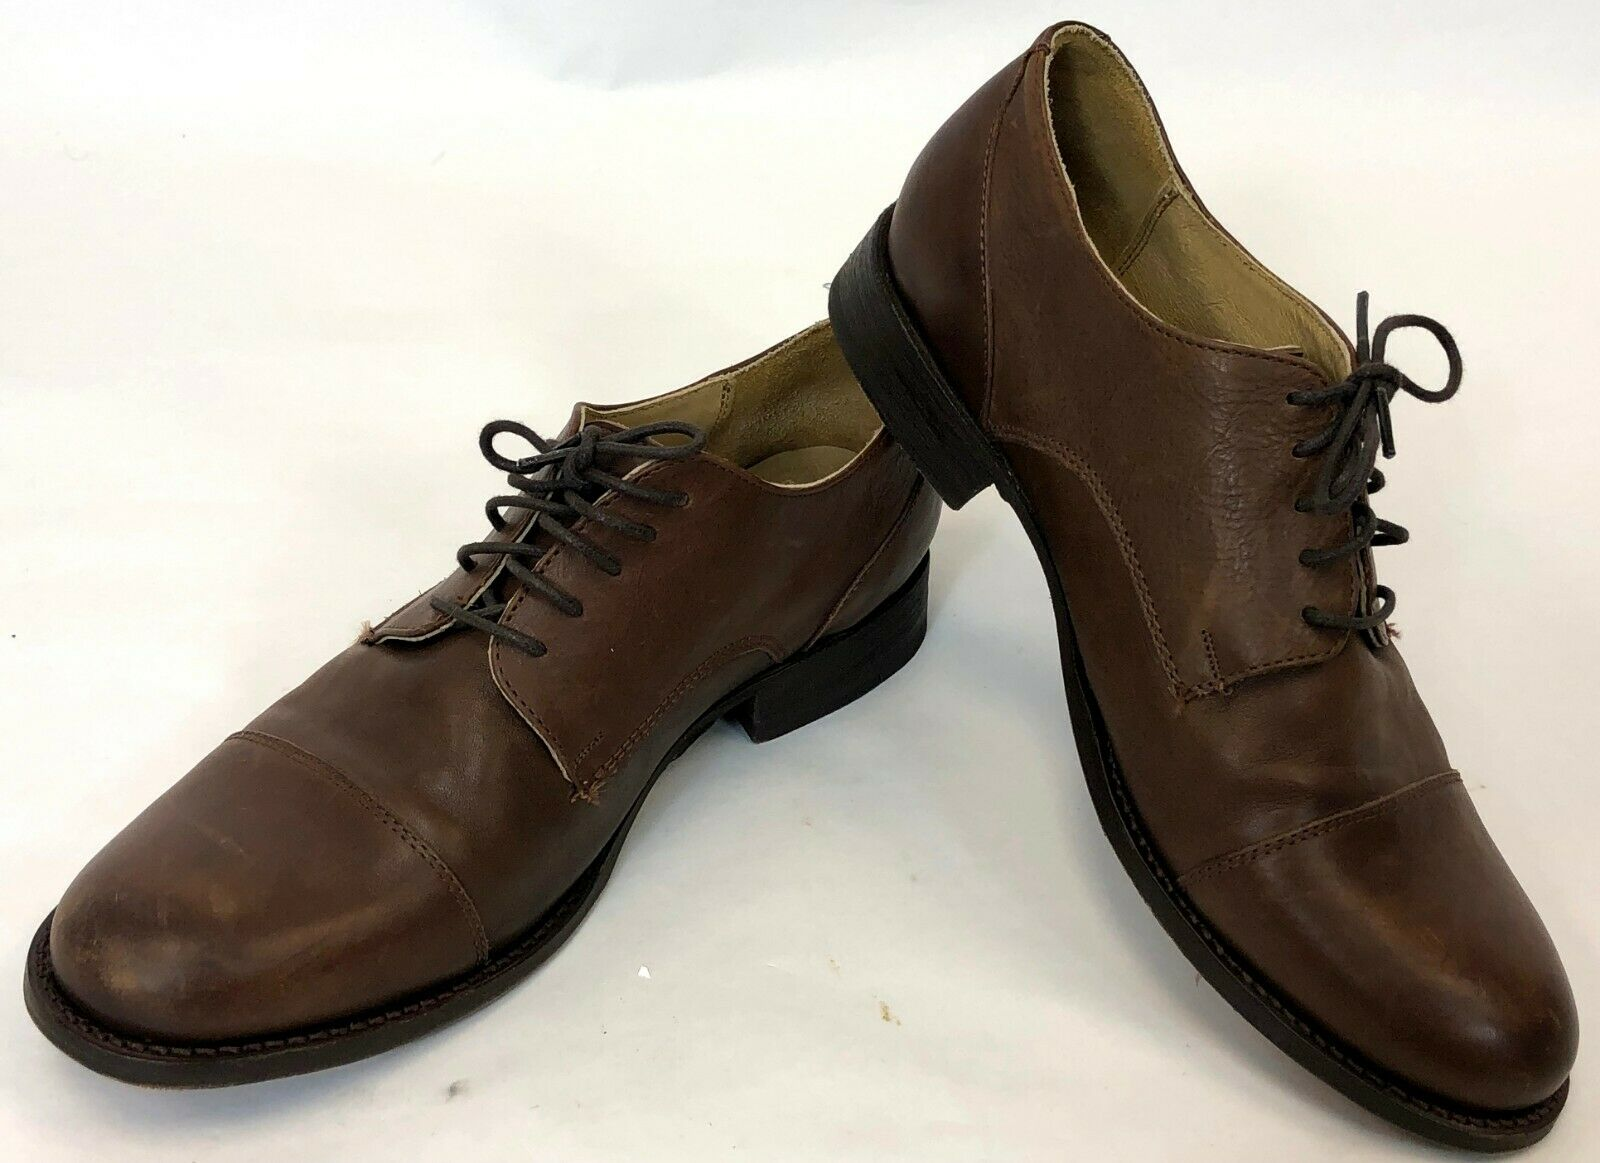 Frye Mens Brown Tan Genuine Leather Lace Up Toe Cap Oxford shoes Size 8.5 B